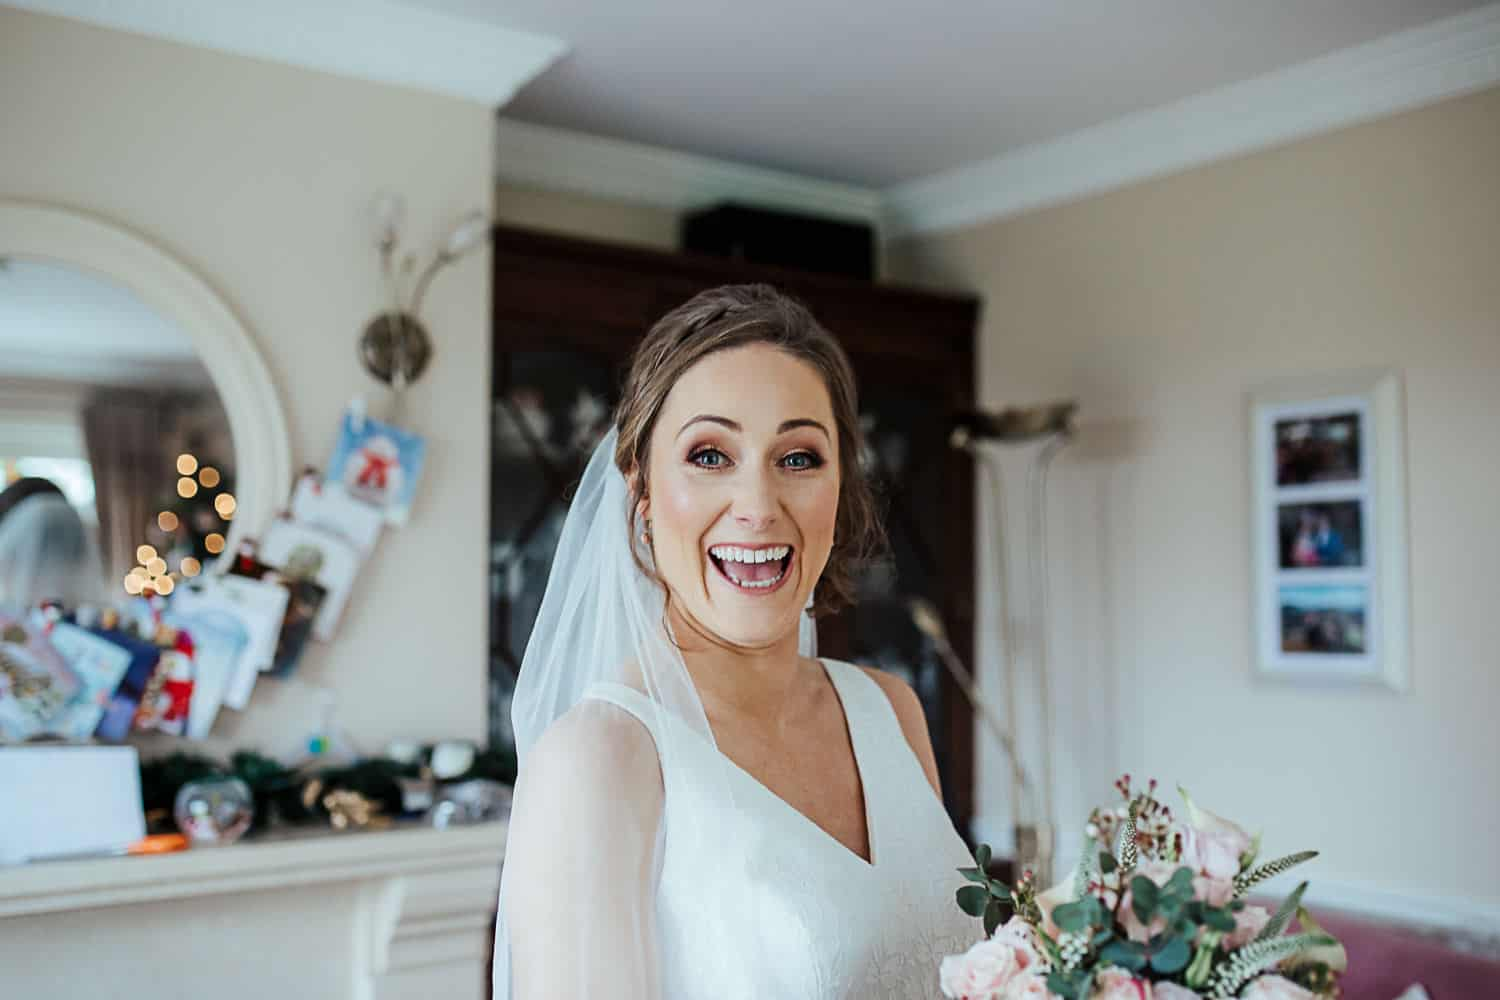 excited bride before leaving for church